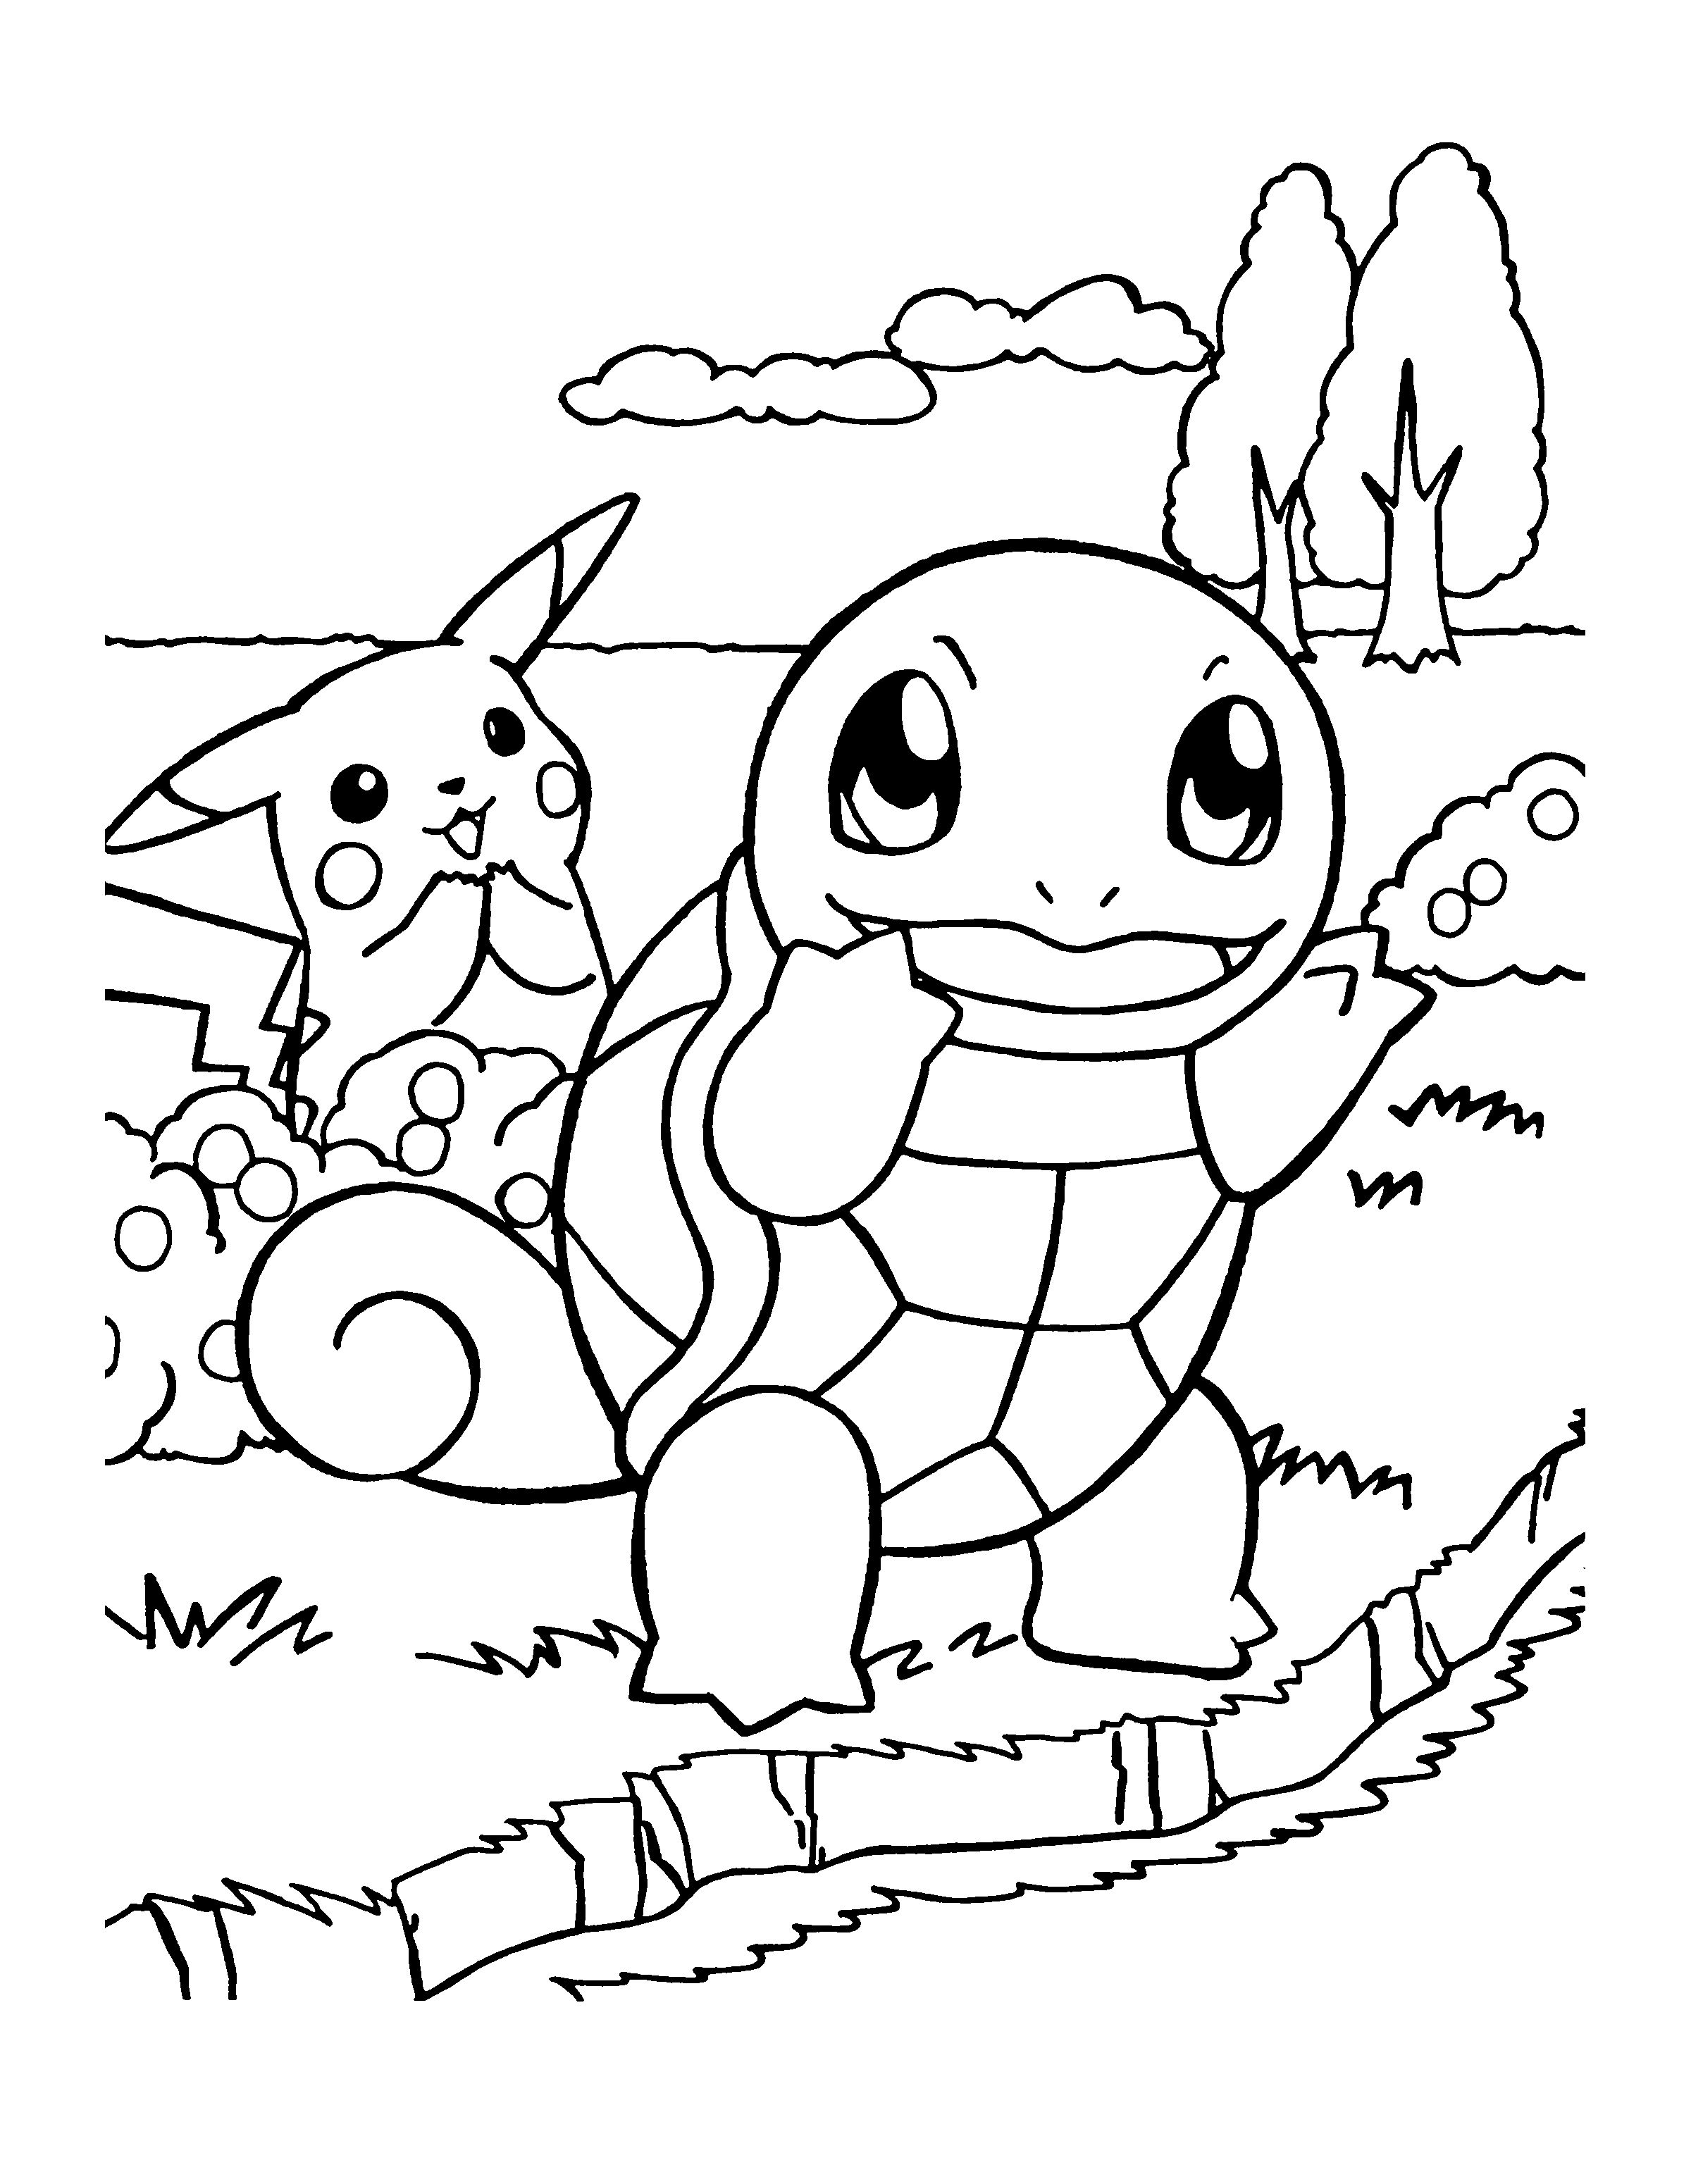 Pokemon Squirtle Coloring Pages Le Coloring Page Az Coloring